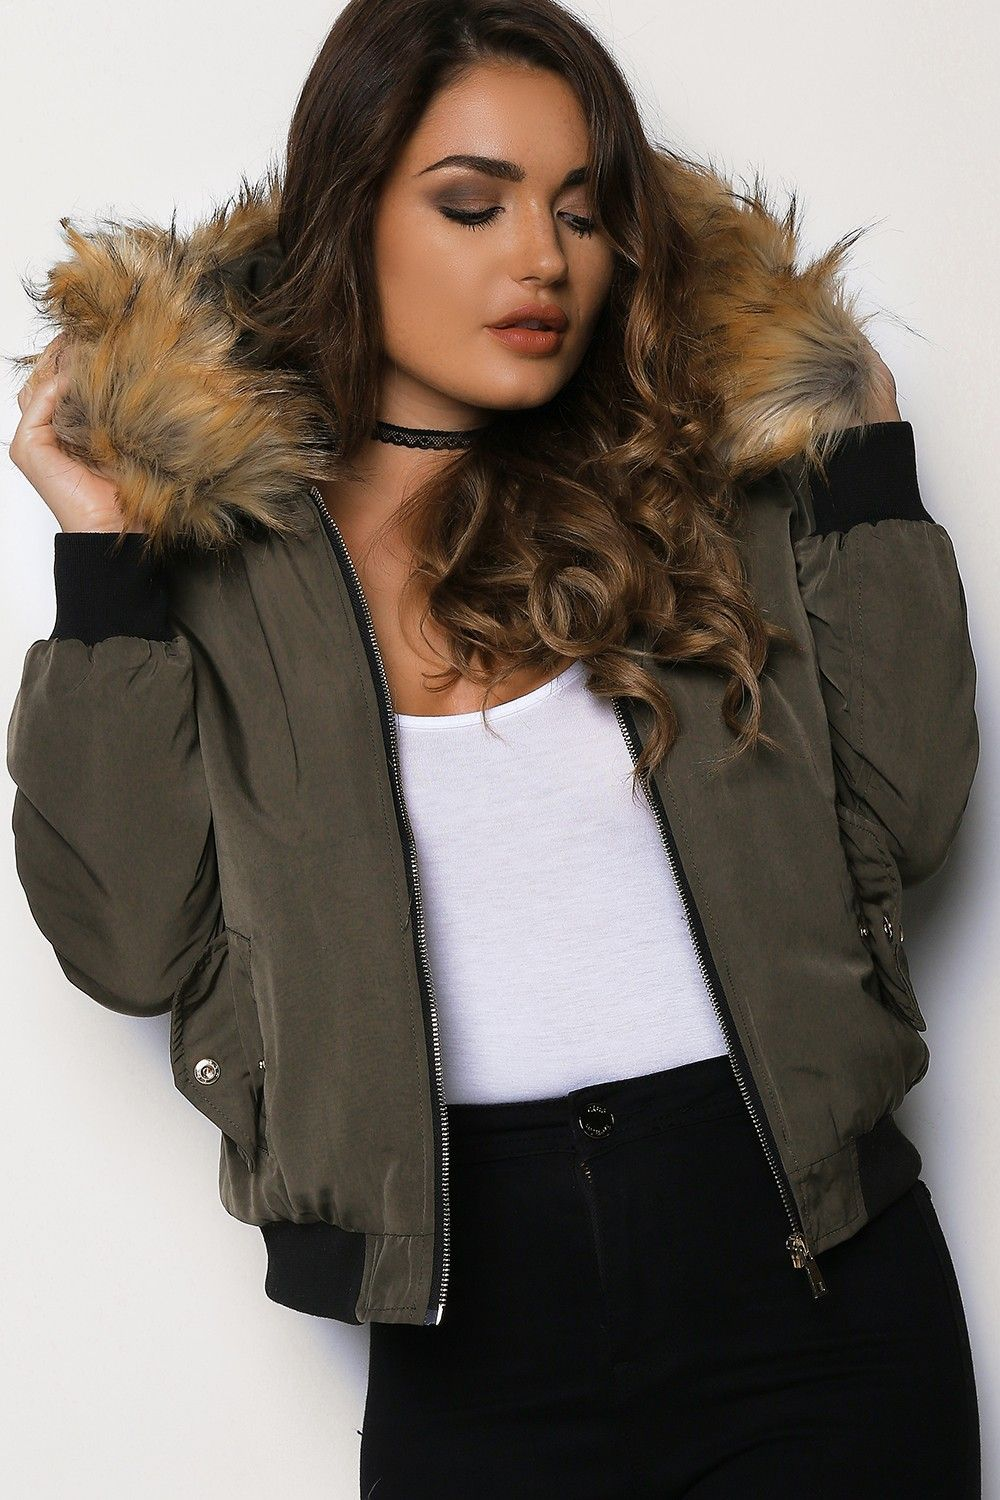 b60f5a418 Zipped Up Bomber Jacket With Faux Fur Trim Hood Khaki in 2019 ...